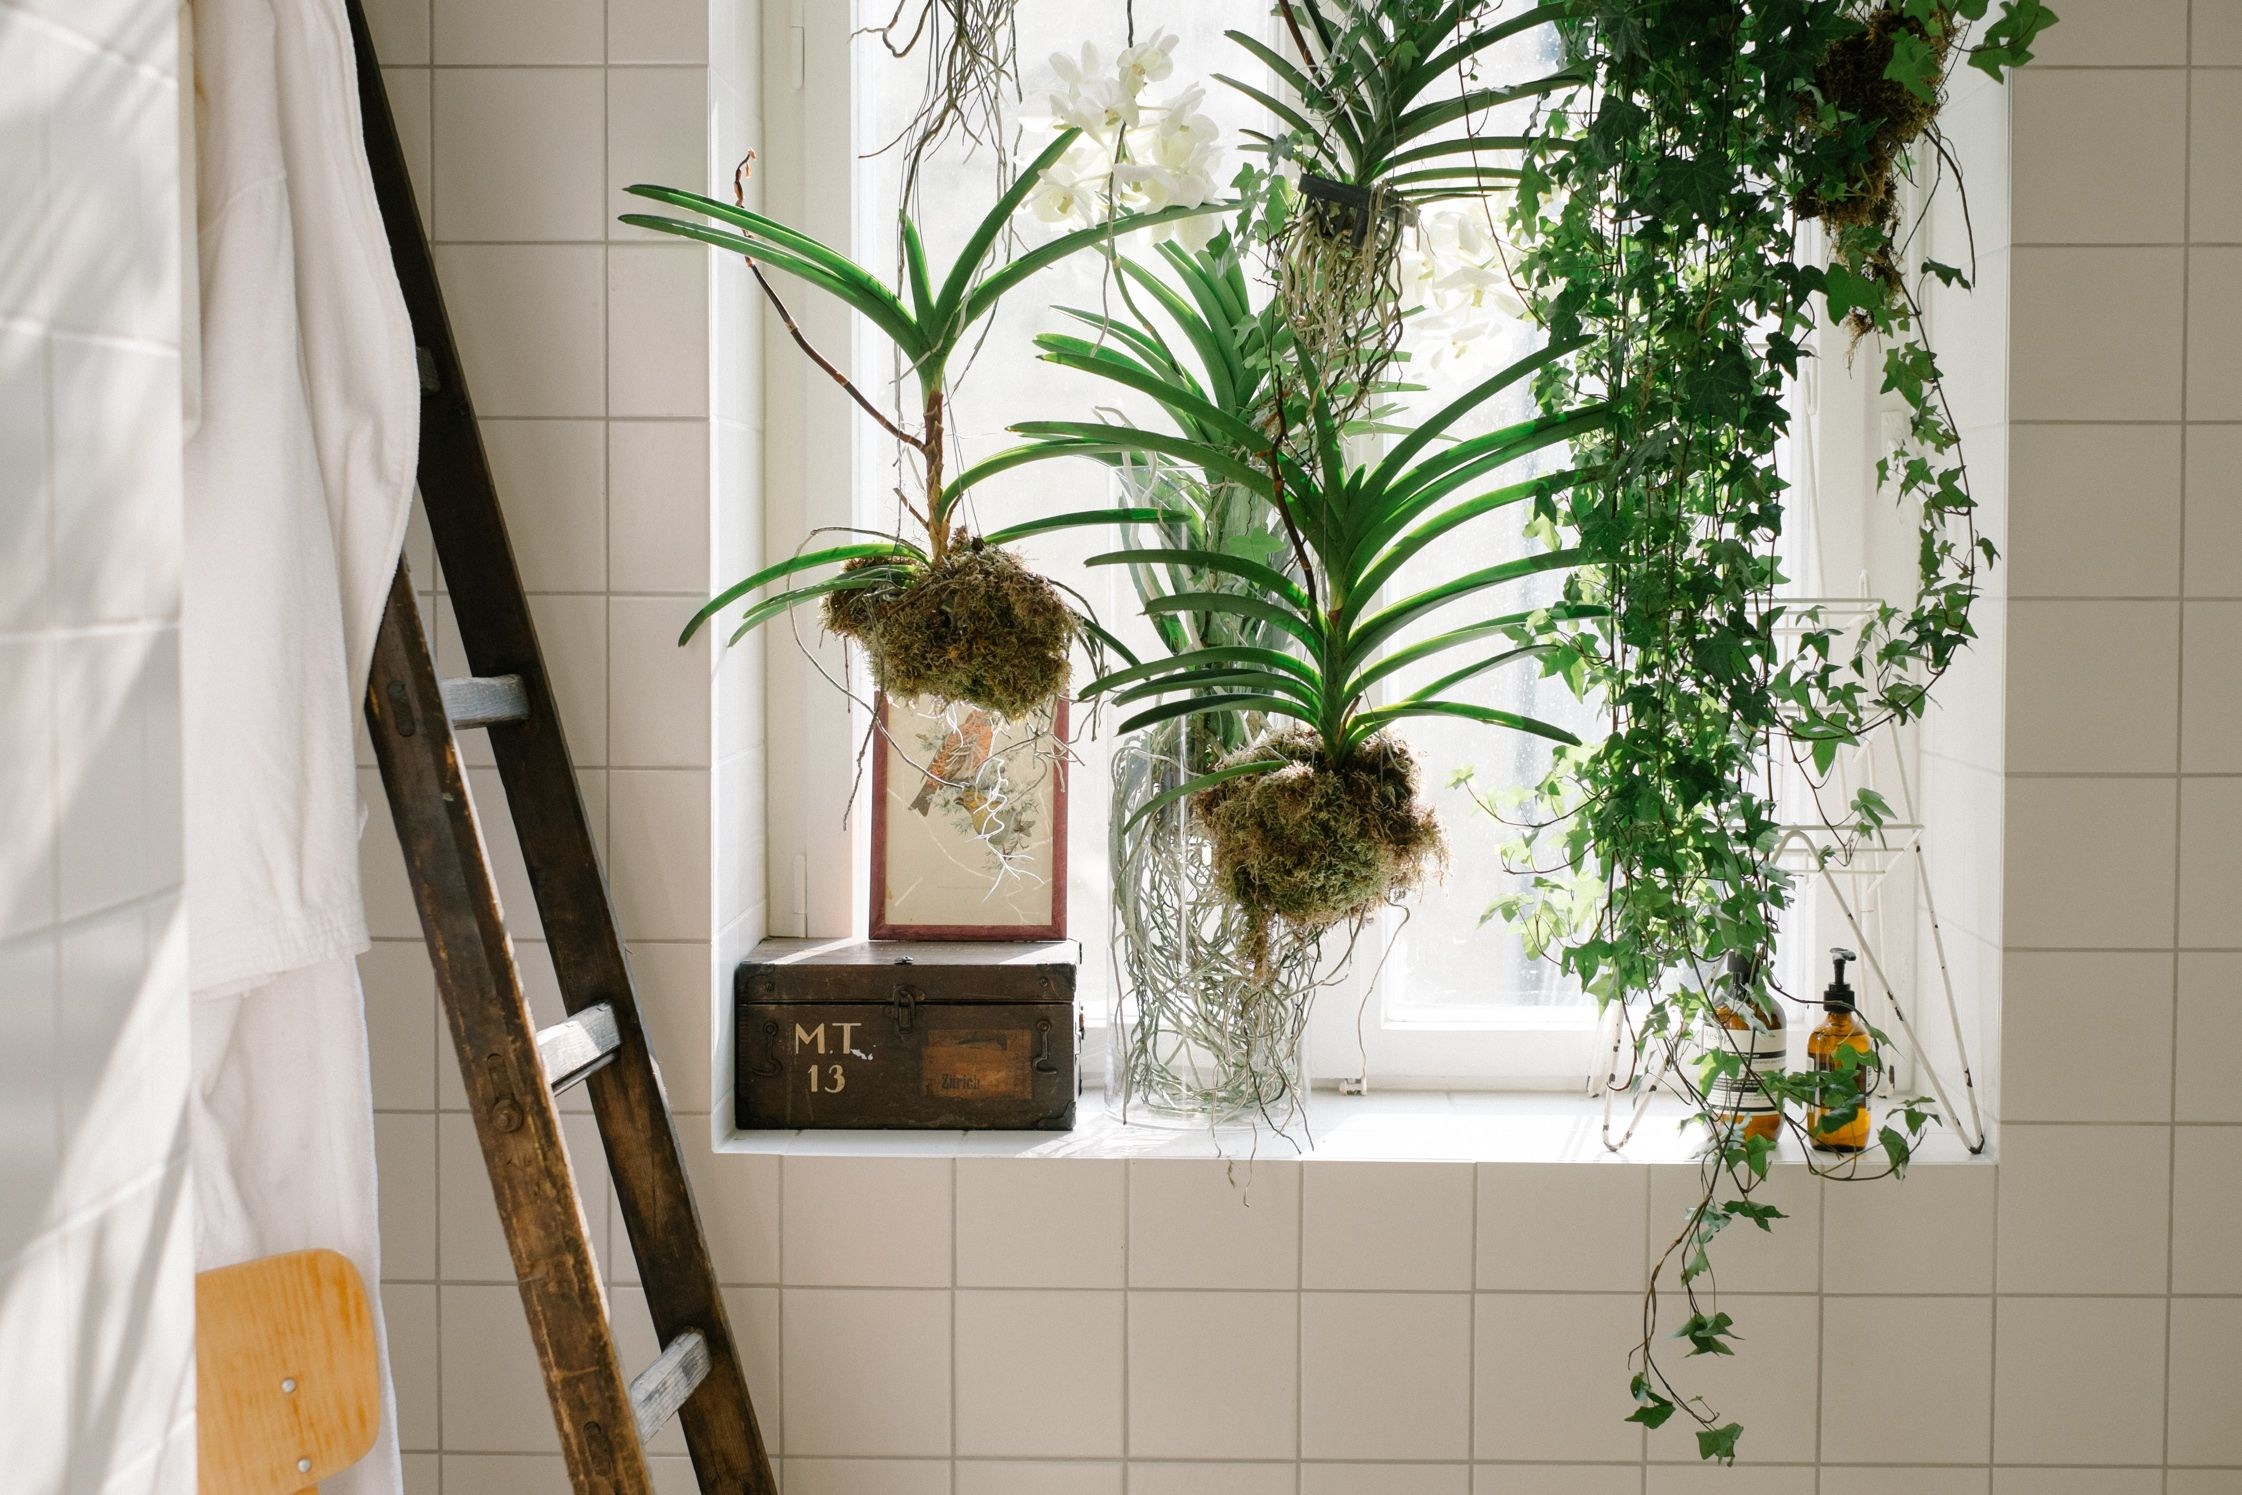 Our Hanging Planters In The Bathroom Of The Fvf Apartment Bathroom Plants Indoor Plants Bathroom Plants